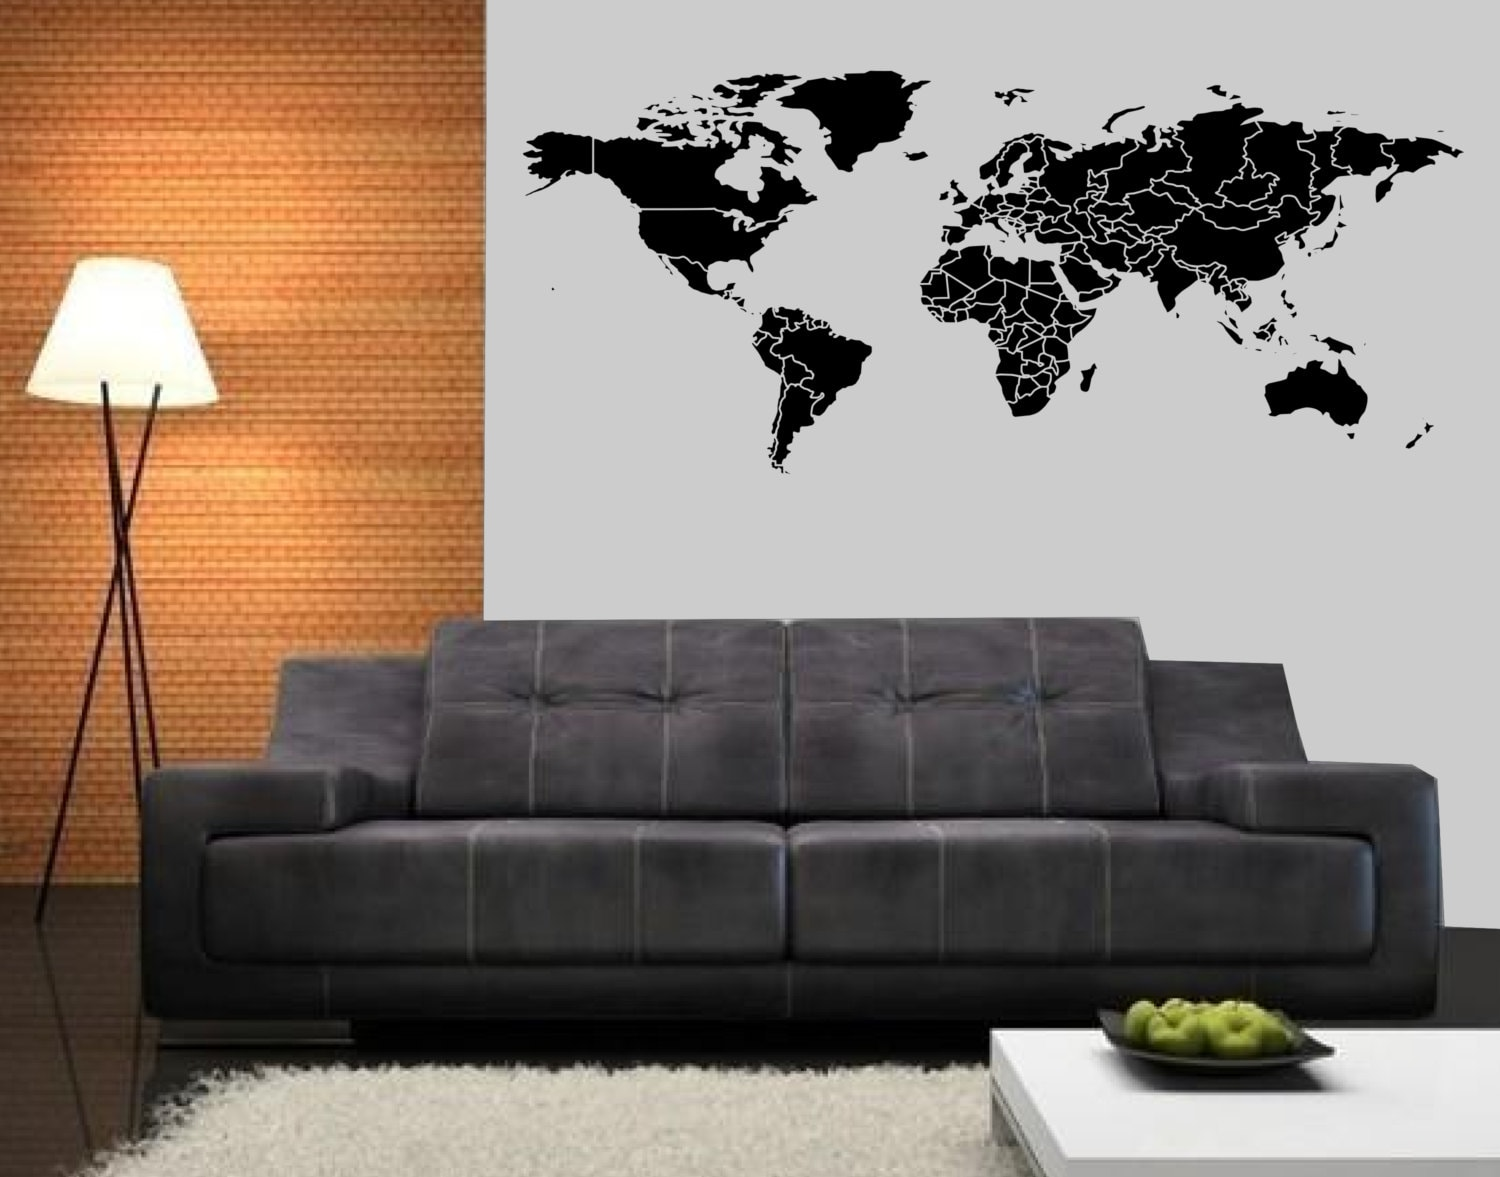 60 In Wide World Map Large Wall Decal Office Nursery Living Room Wall Decal World Map Vinyl Wall Decor Home Interior Design Art Mural